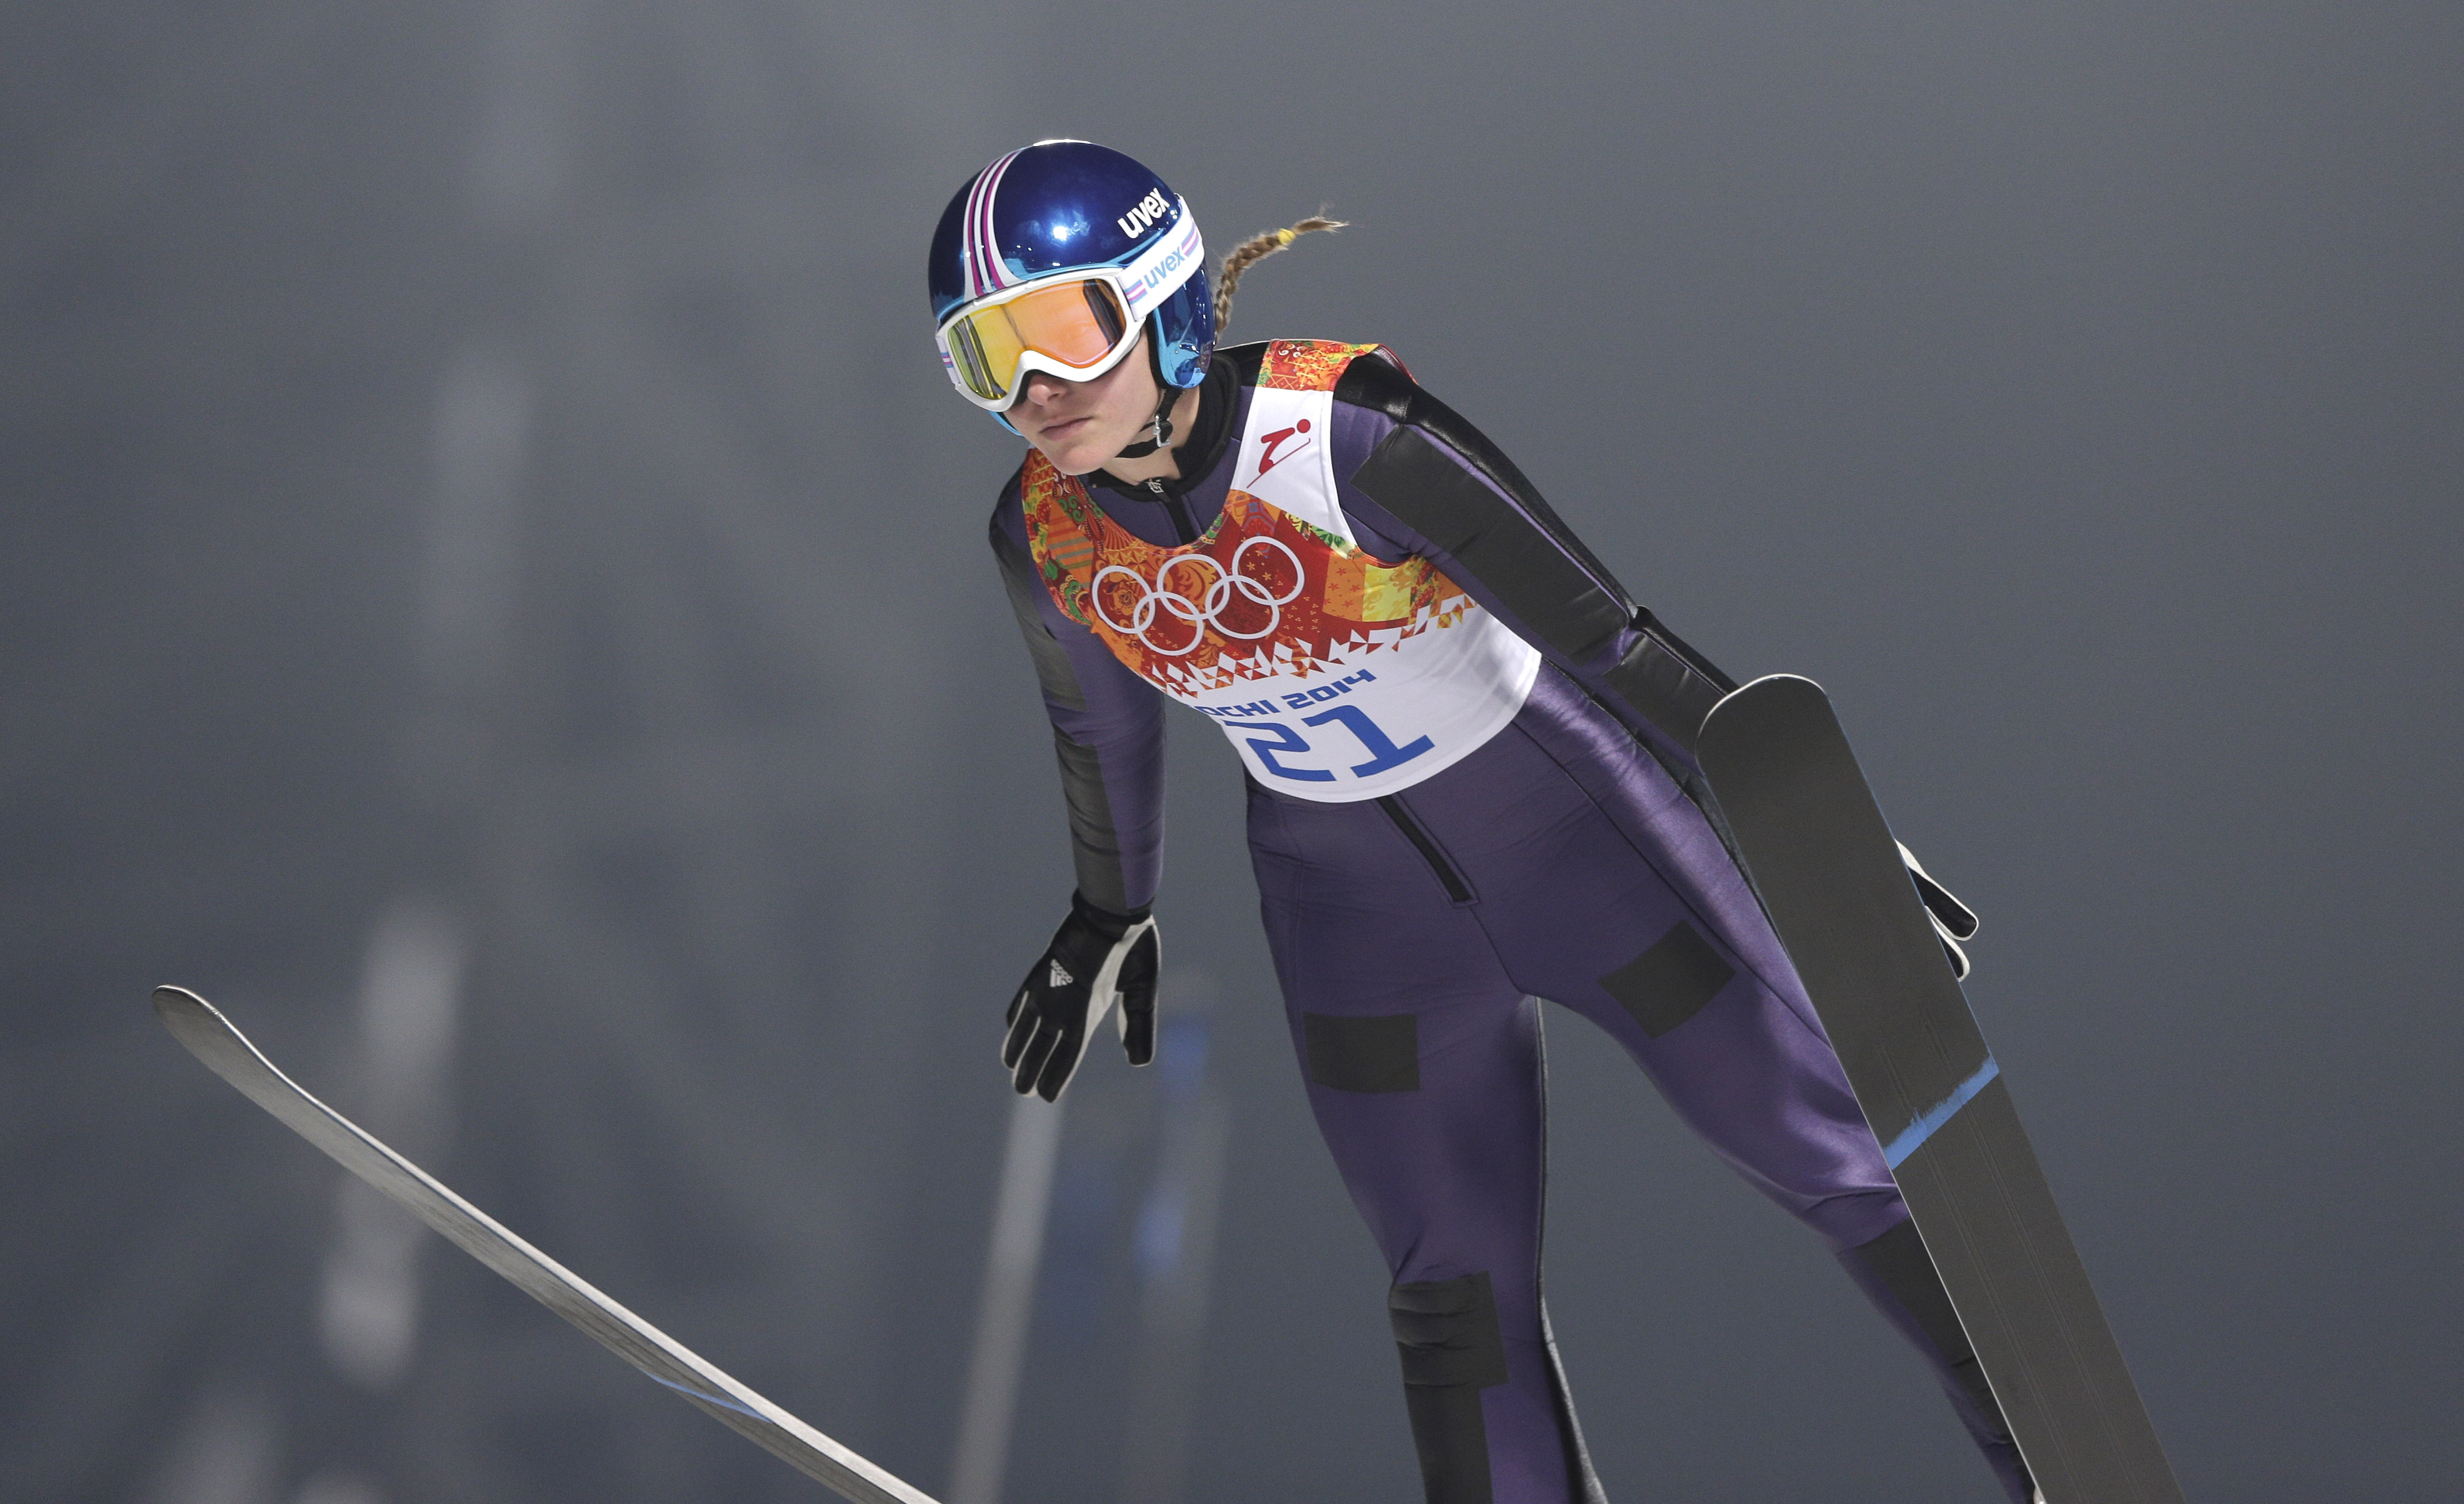 why, yesterday's, female, ski, jumping, competition, made, history,